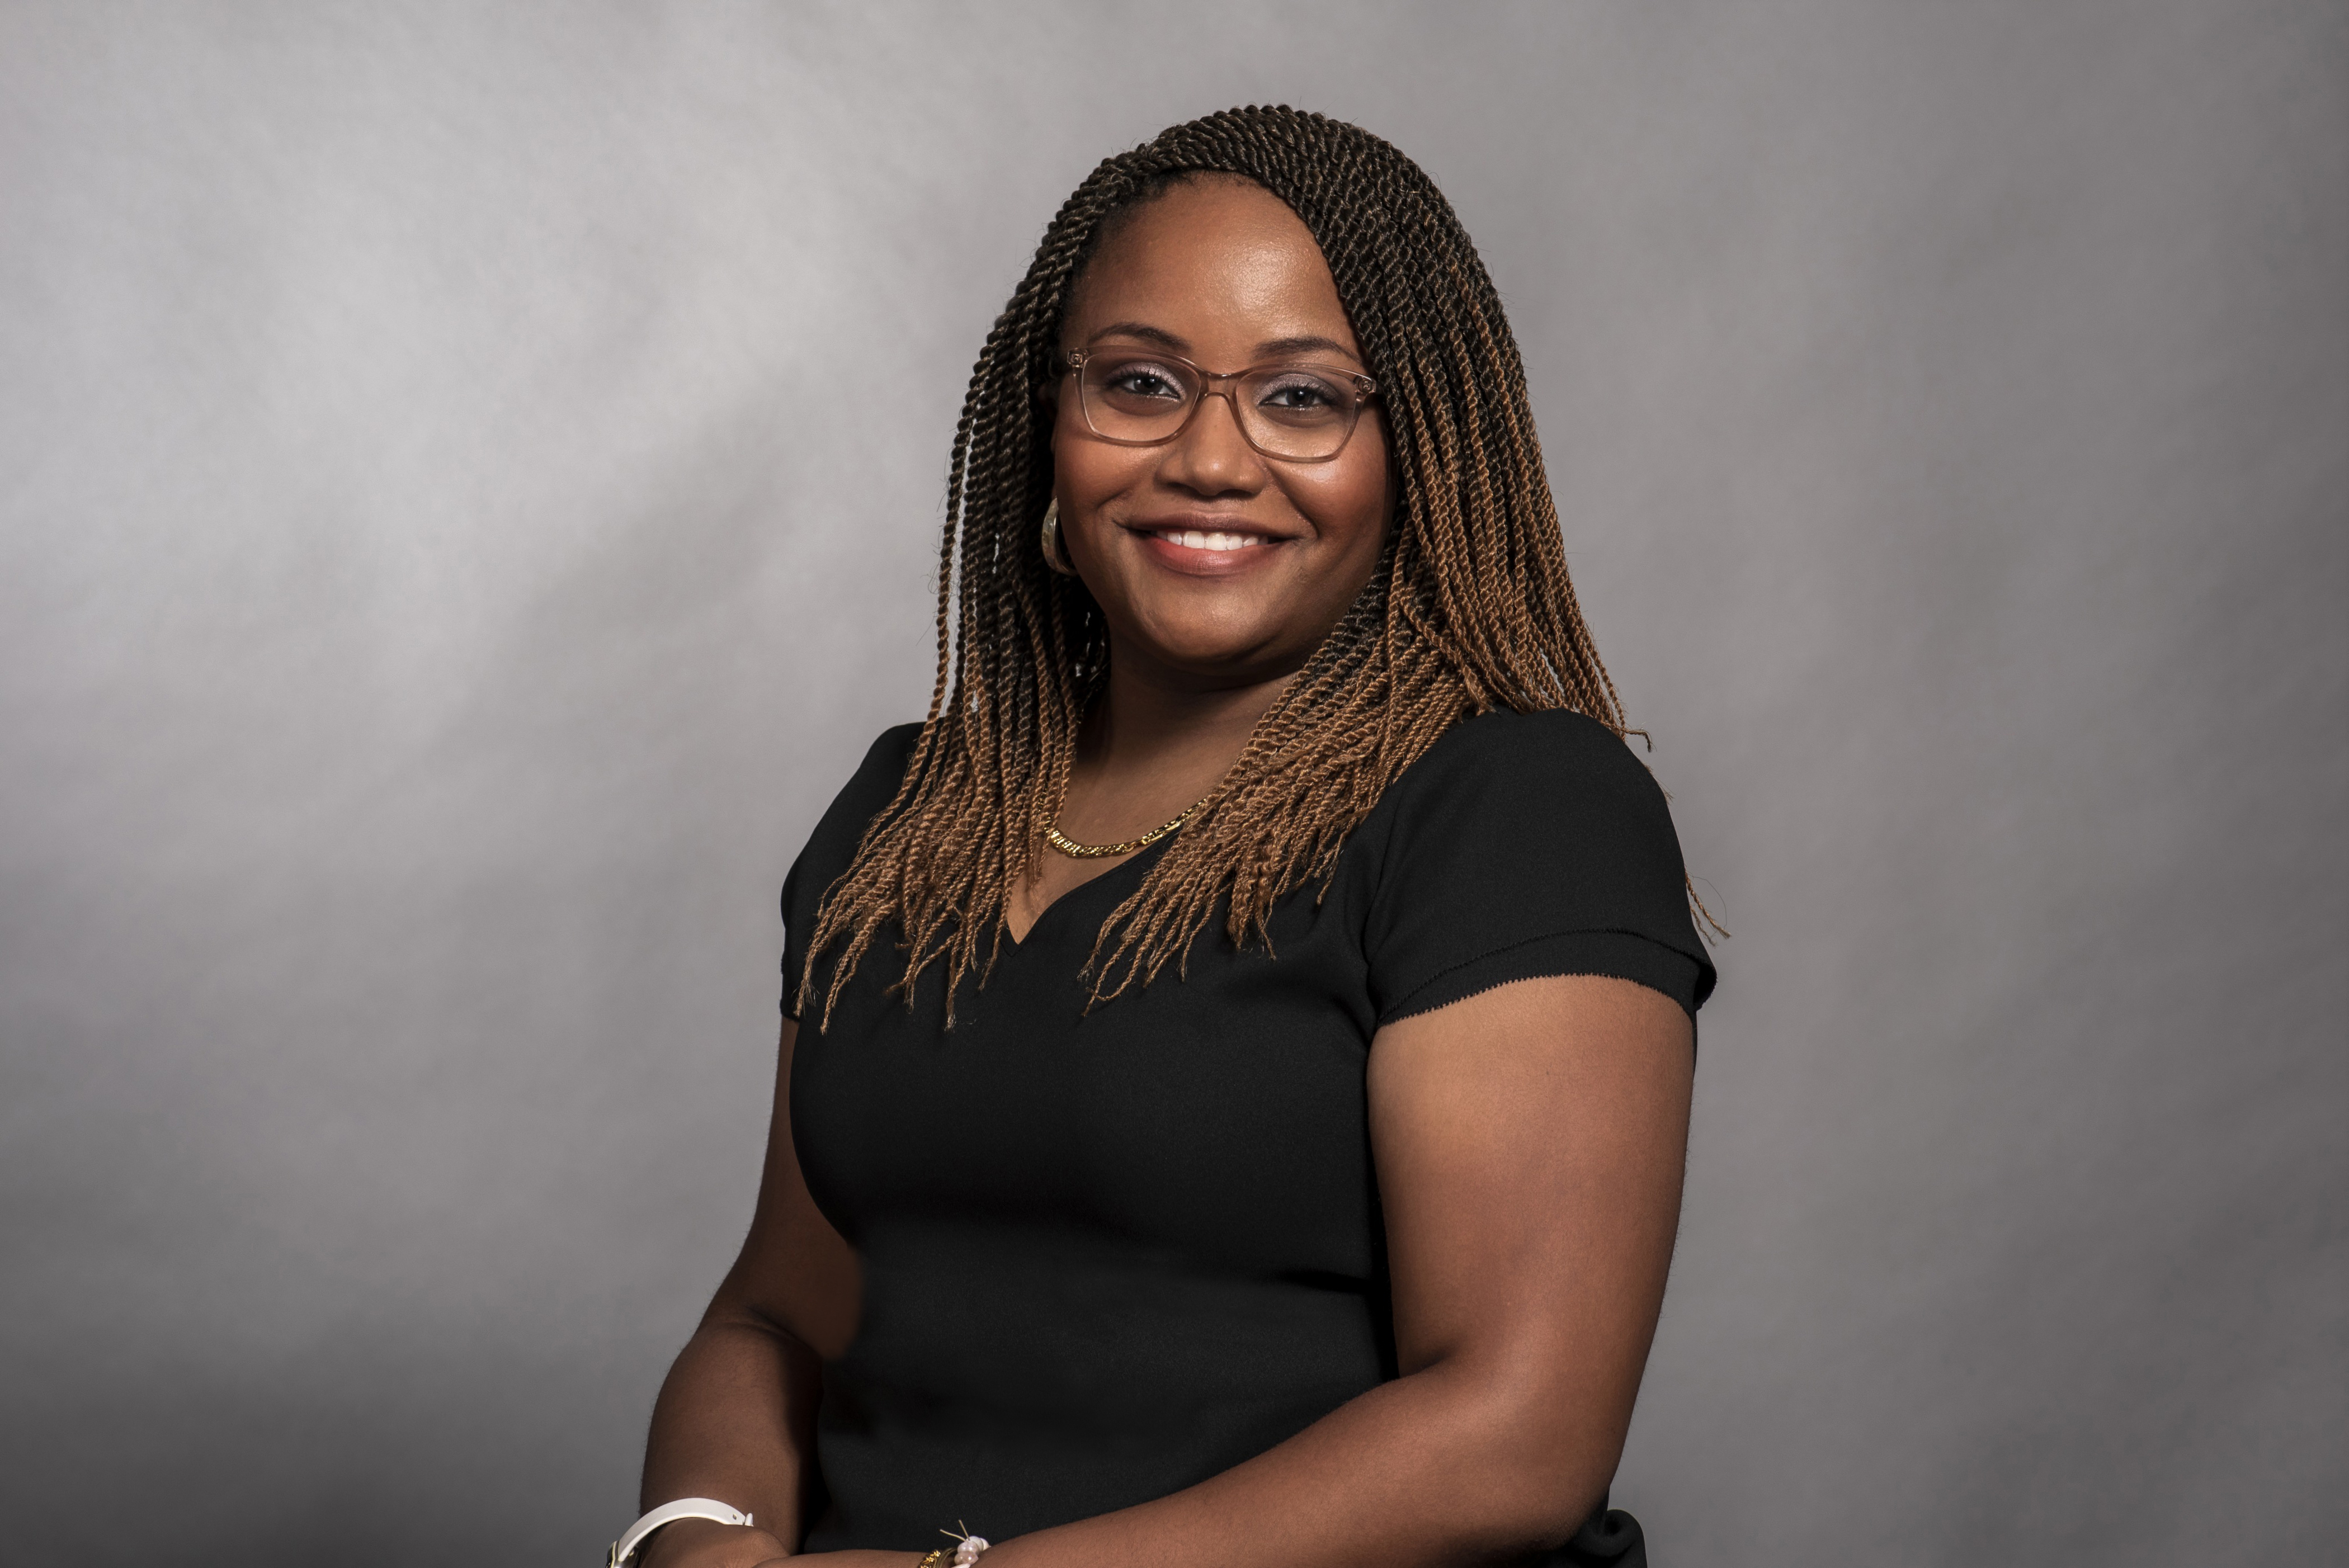 Dr. Shirley Knowles: Dr. Shirley Knowles, Chief Inclusion and Diversity Officer, Progress